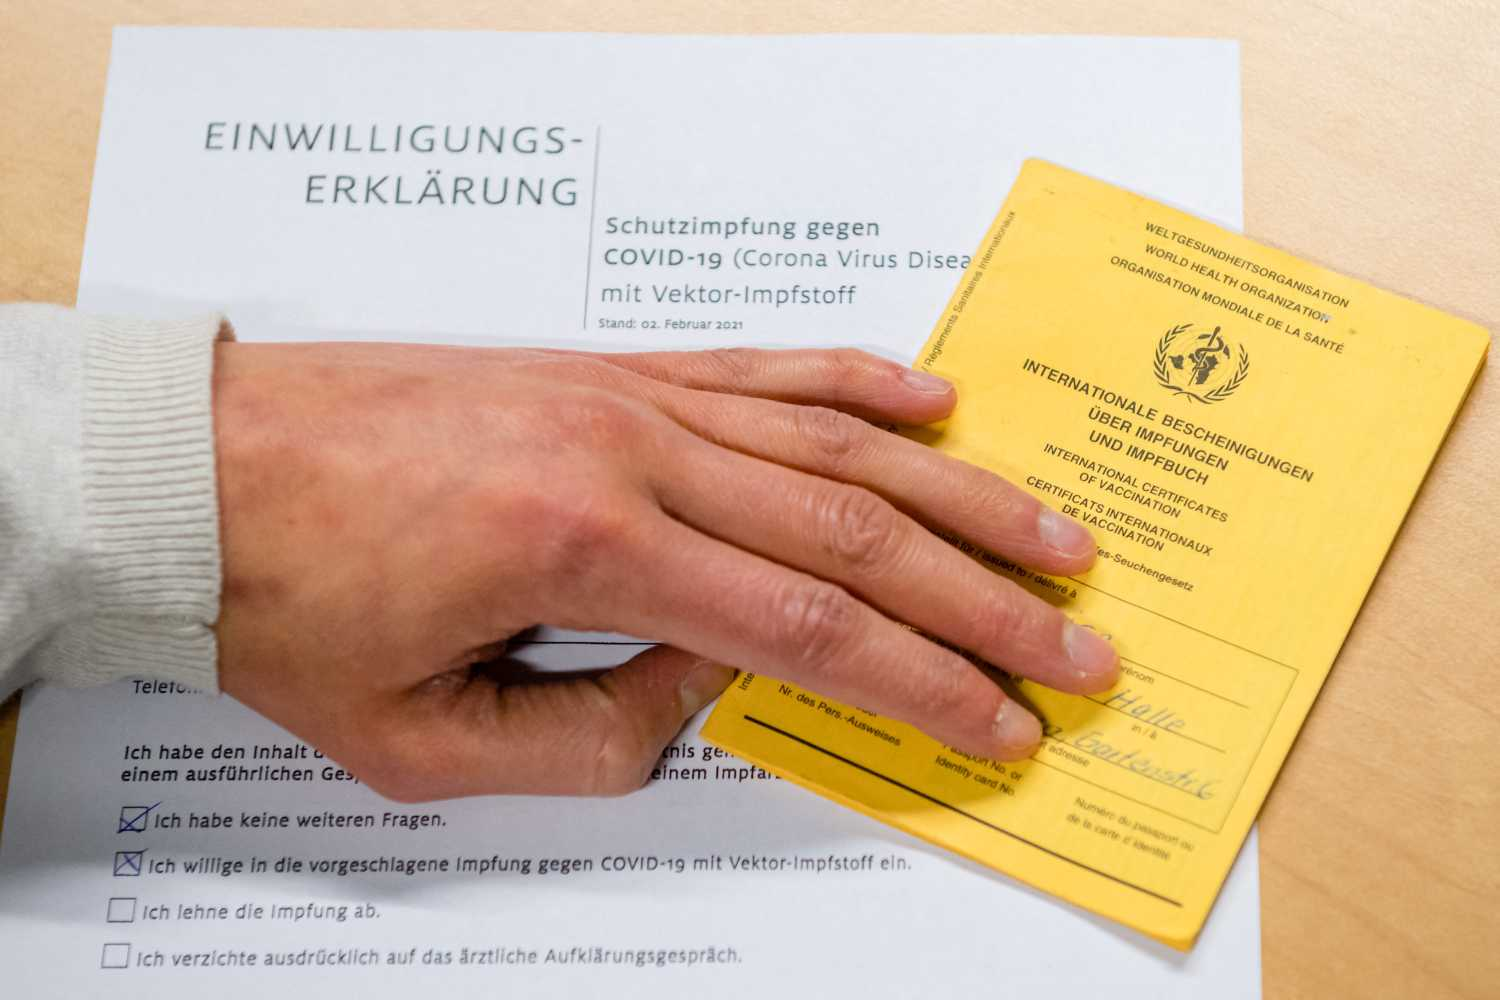 Have your say: Should Switzerland introduce a Covid-19 immunity pass?